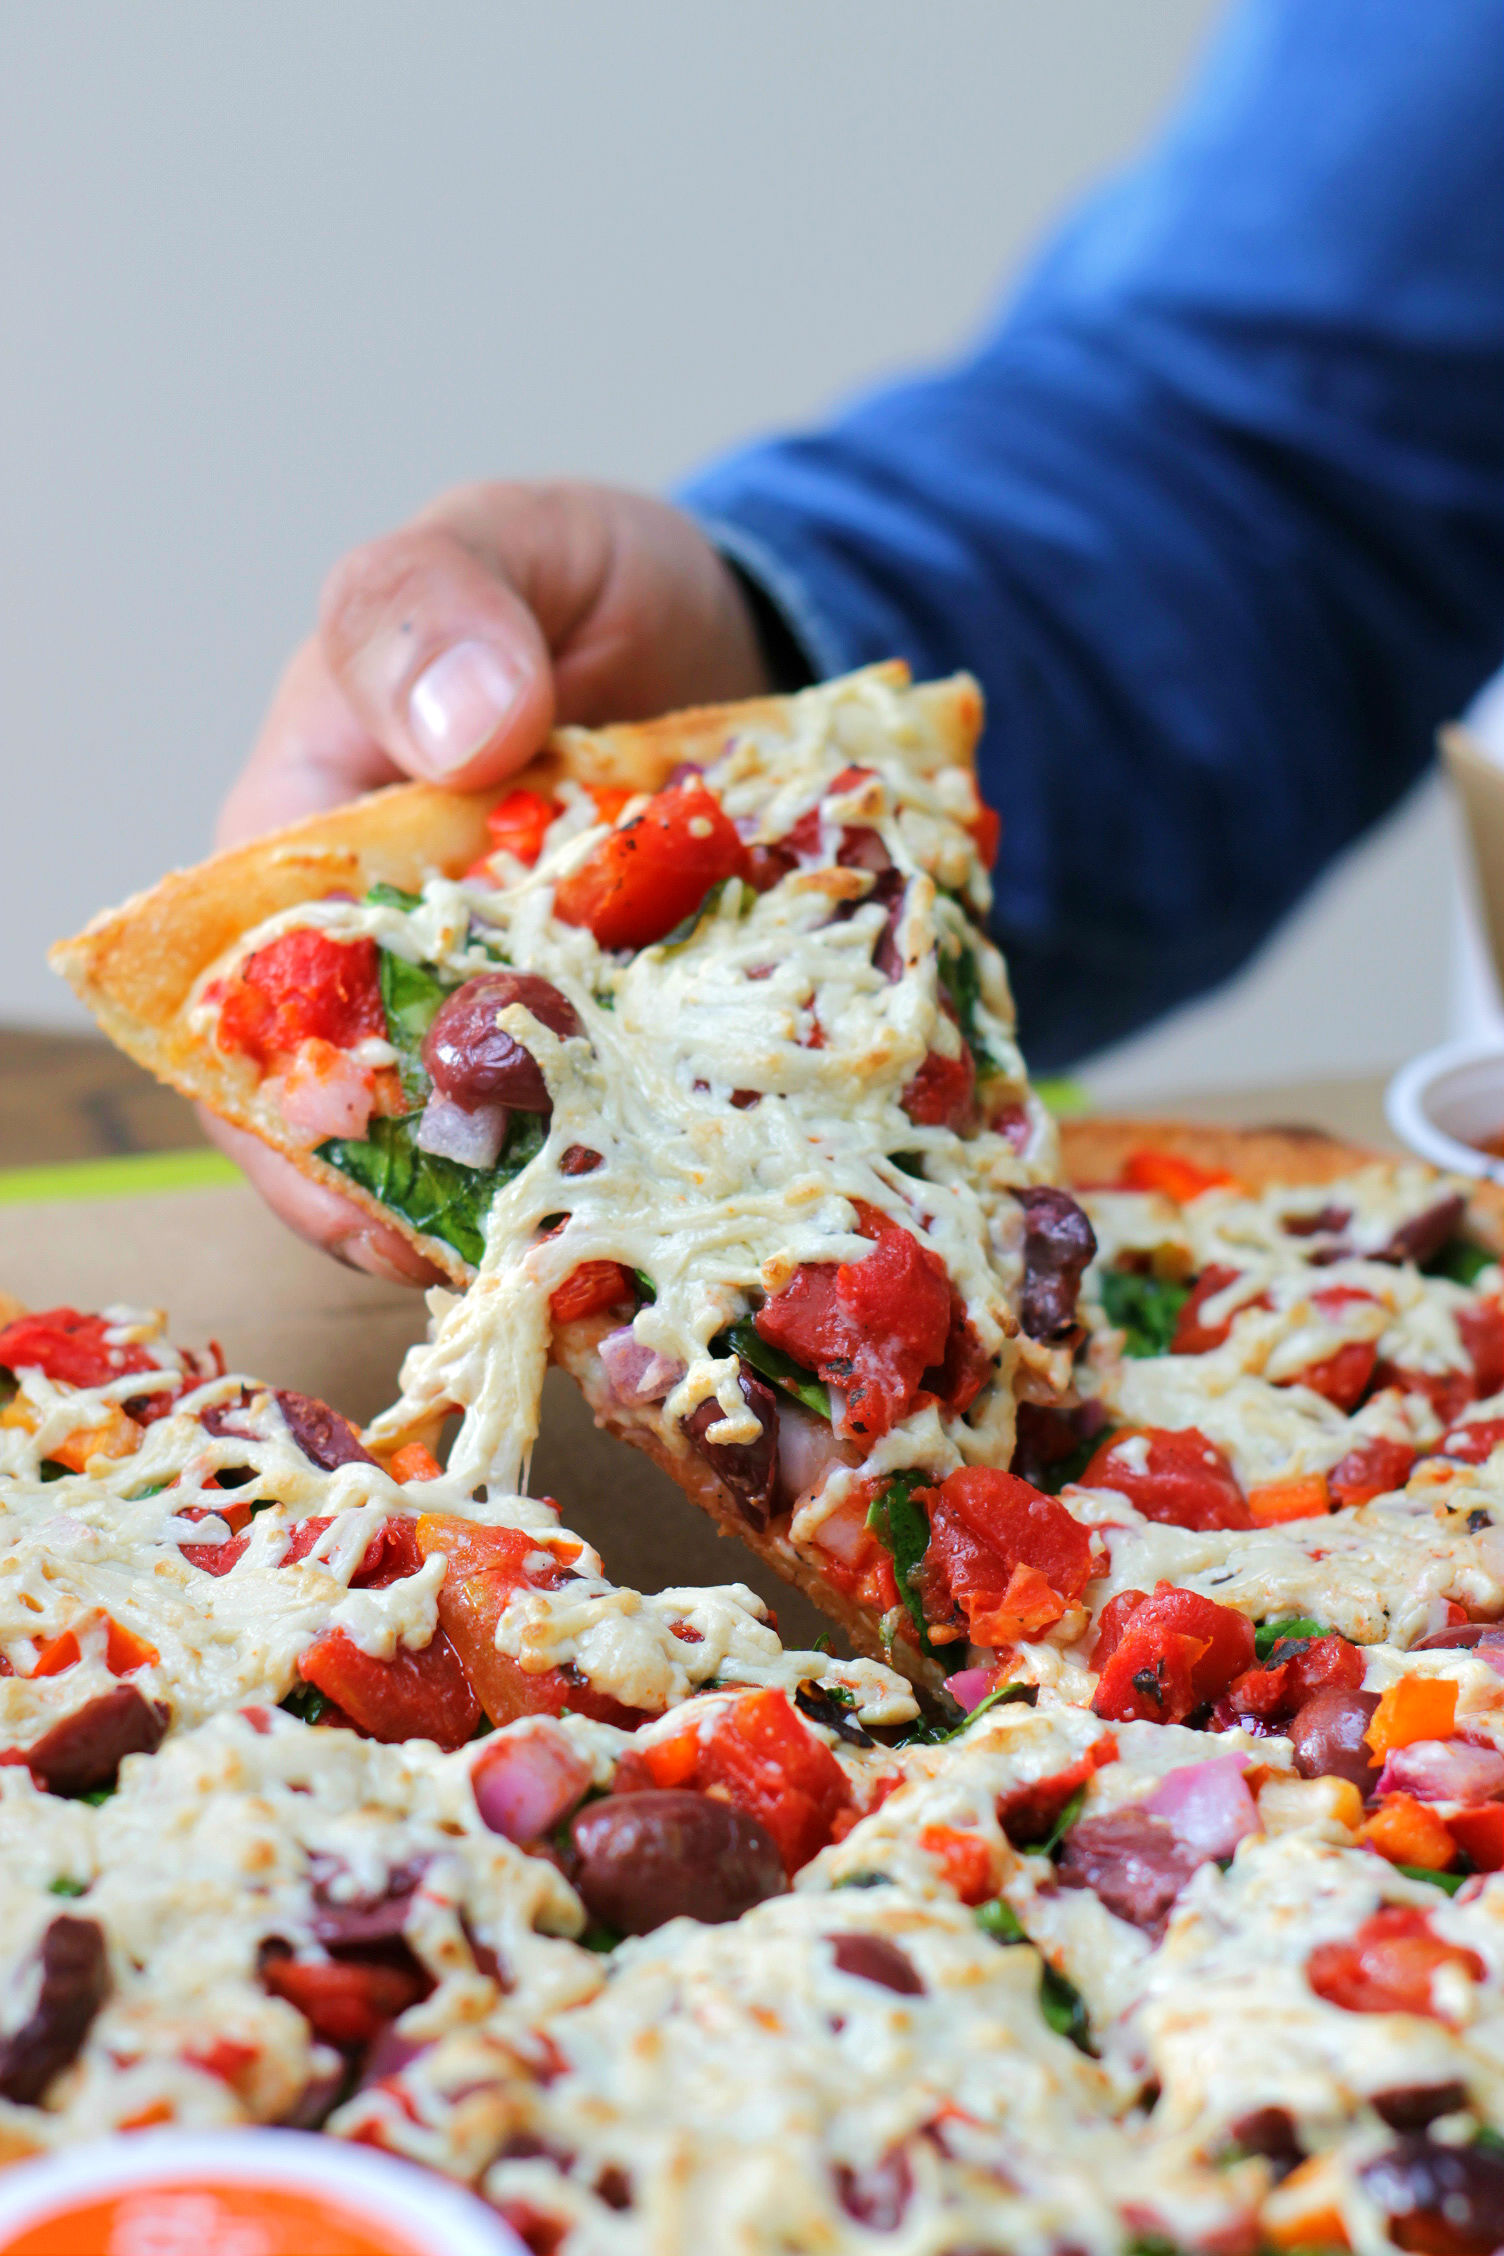 Why You Shouldn't Feel Guilty Eating Pizza